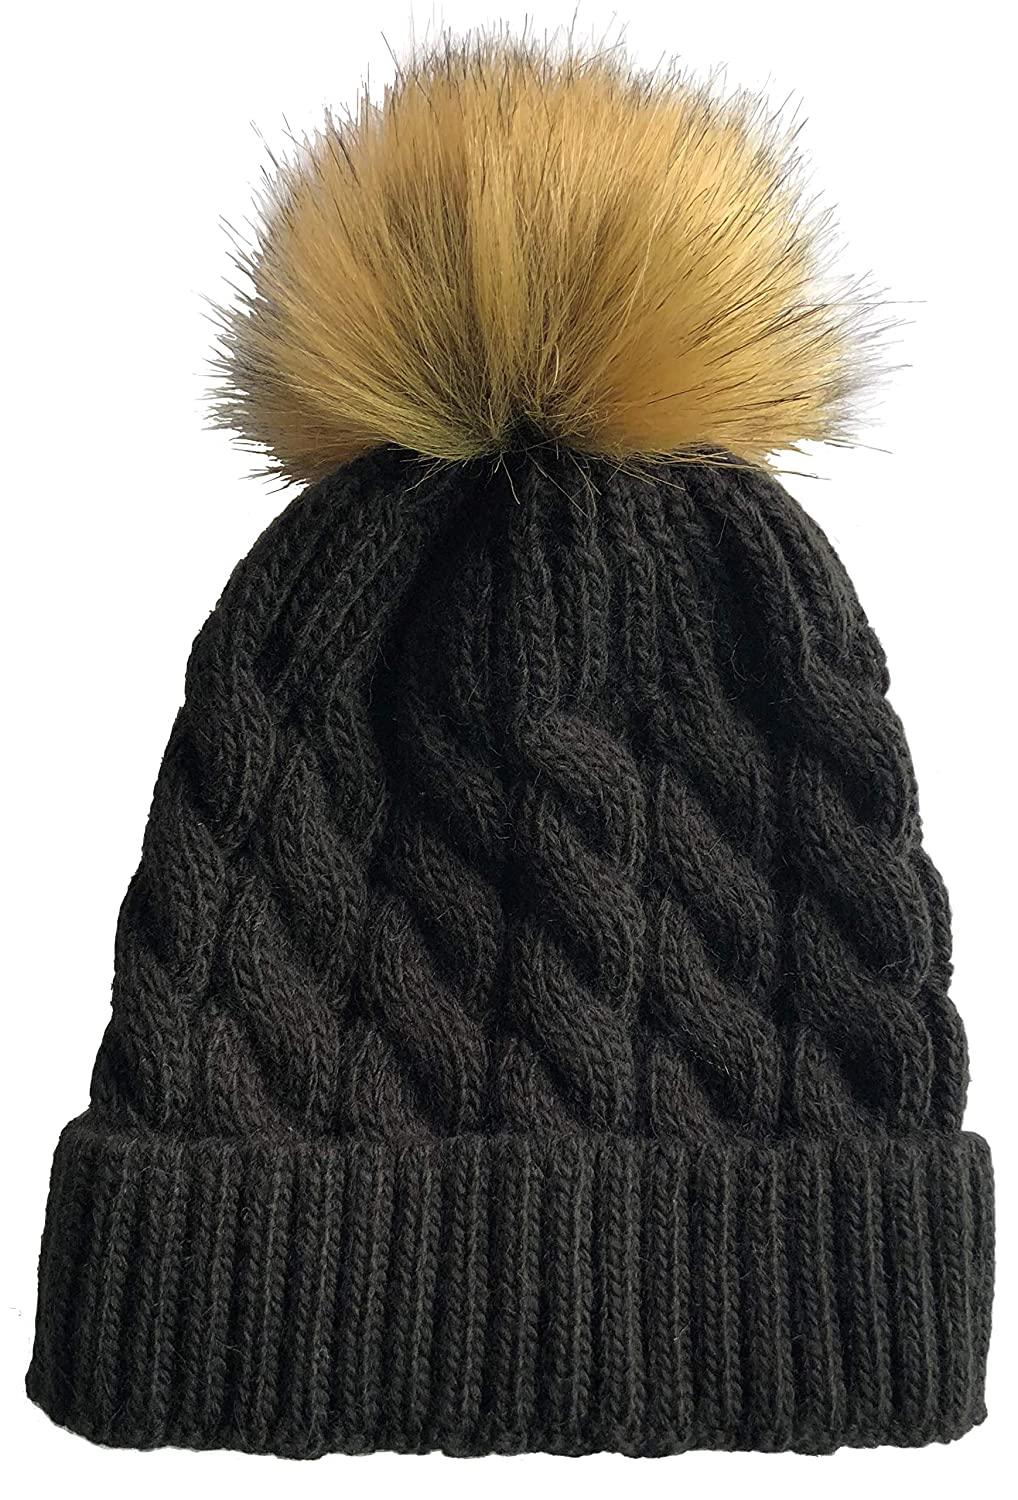 1ee99d18f9e SOFT GRIP Women Cable Knit Slouchy Thick Winter Hat Beanie Pom Pom 1 ...